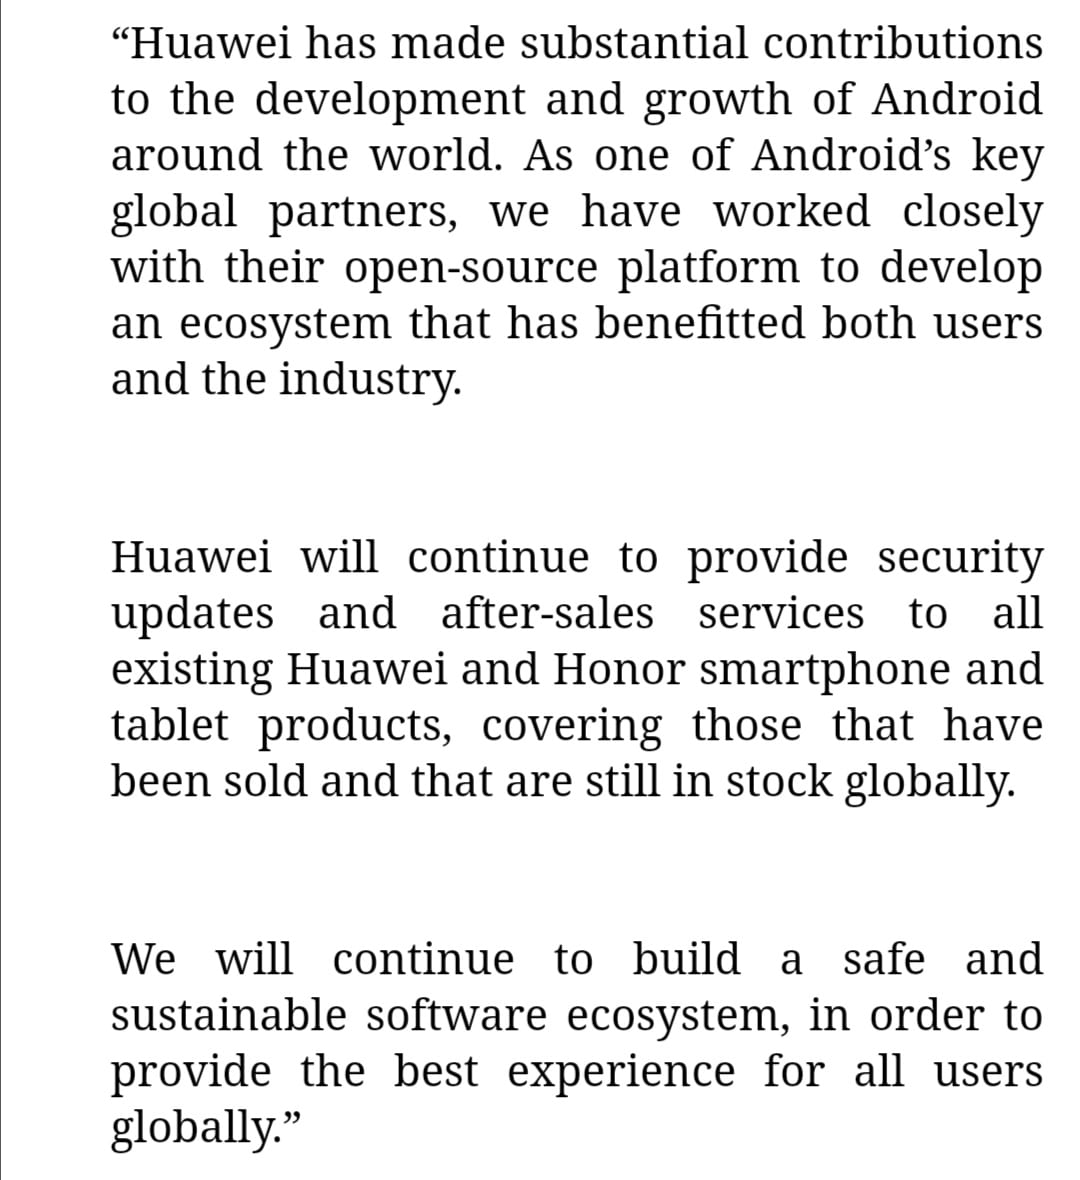 Huawei/Honor statement regarding Android support